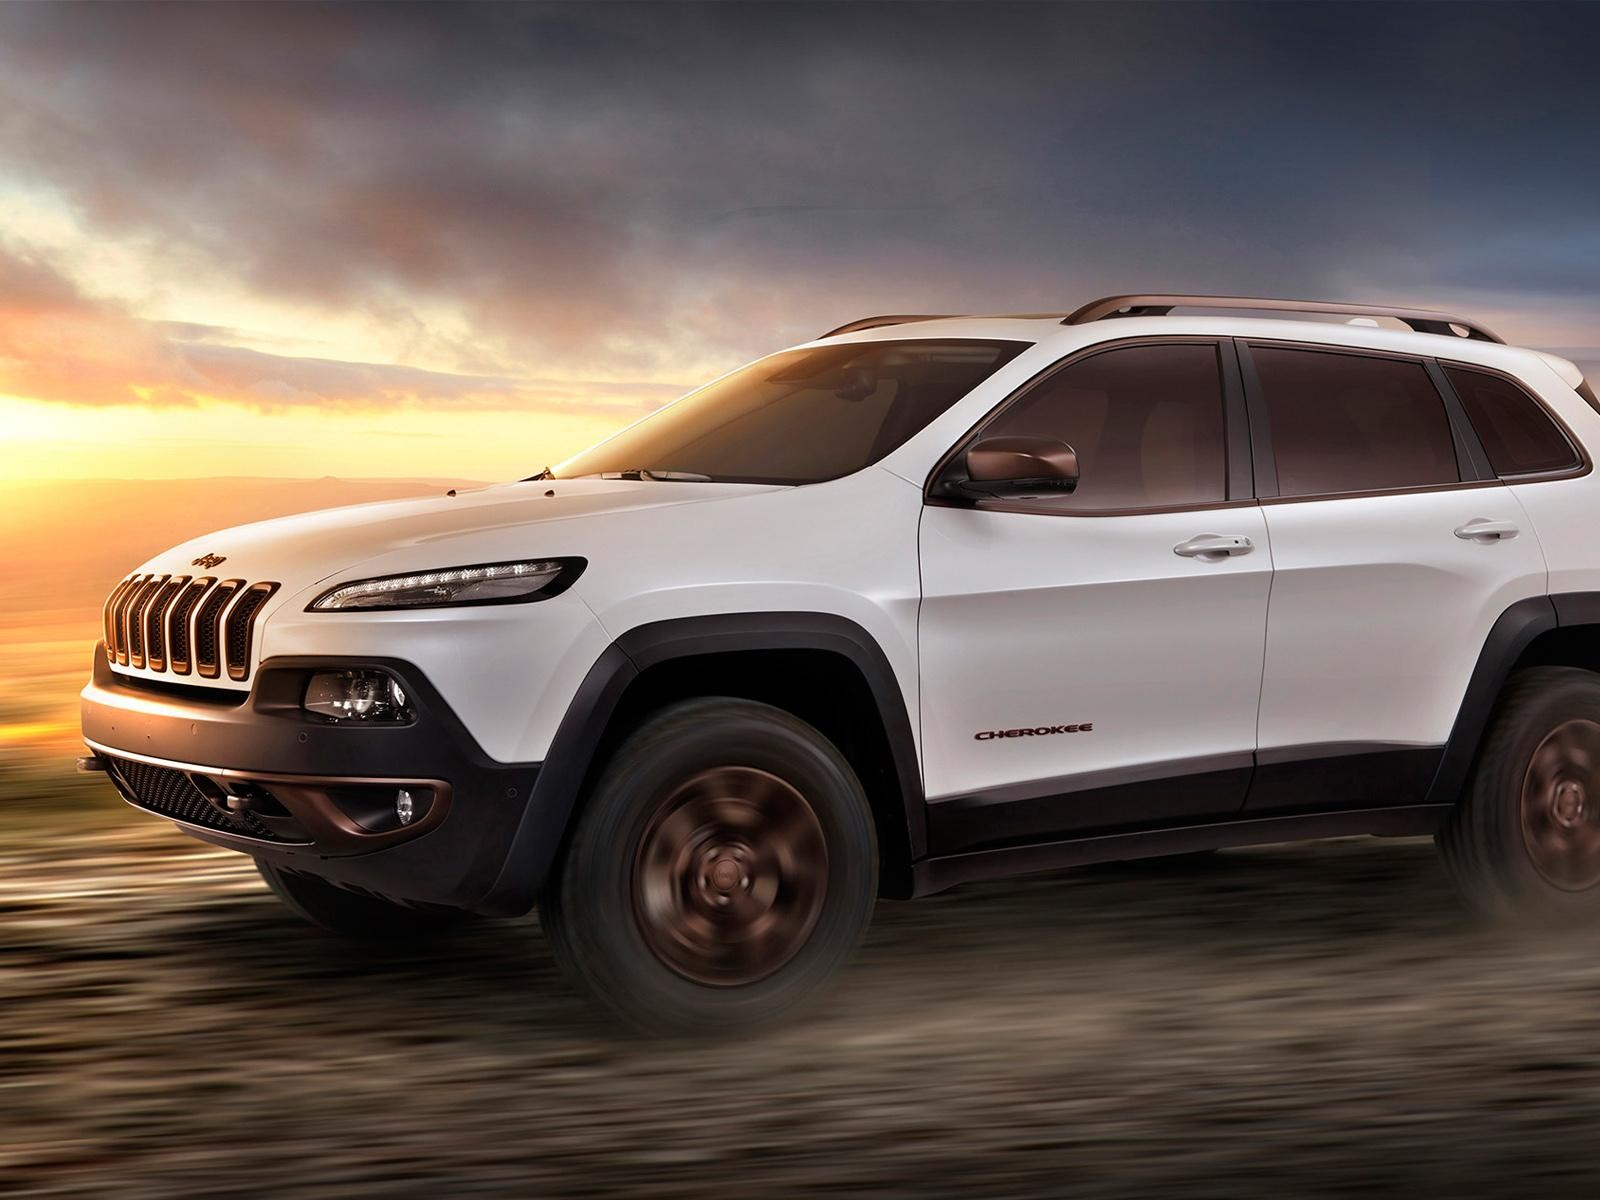 2019 Jeep Cherokee Sageland Concept photo - 4